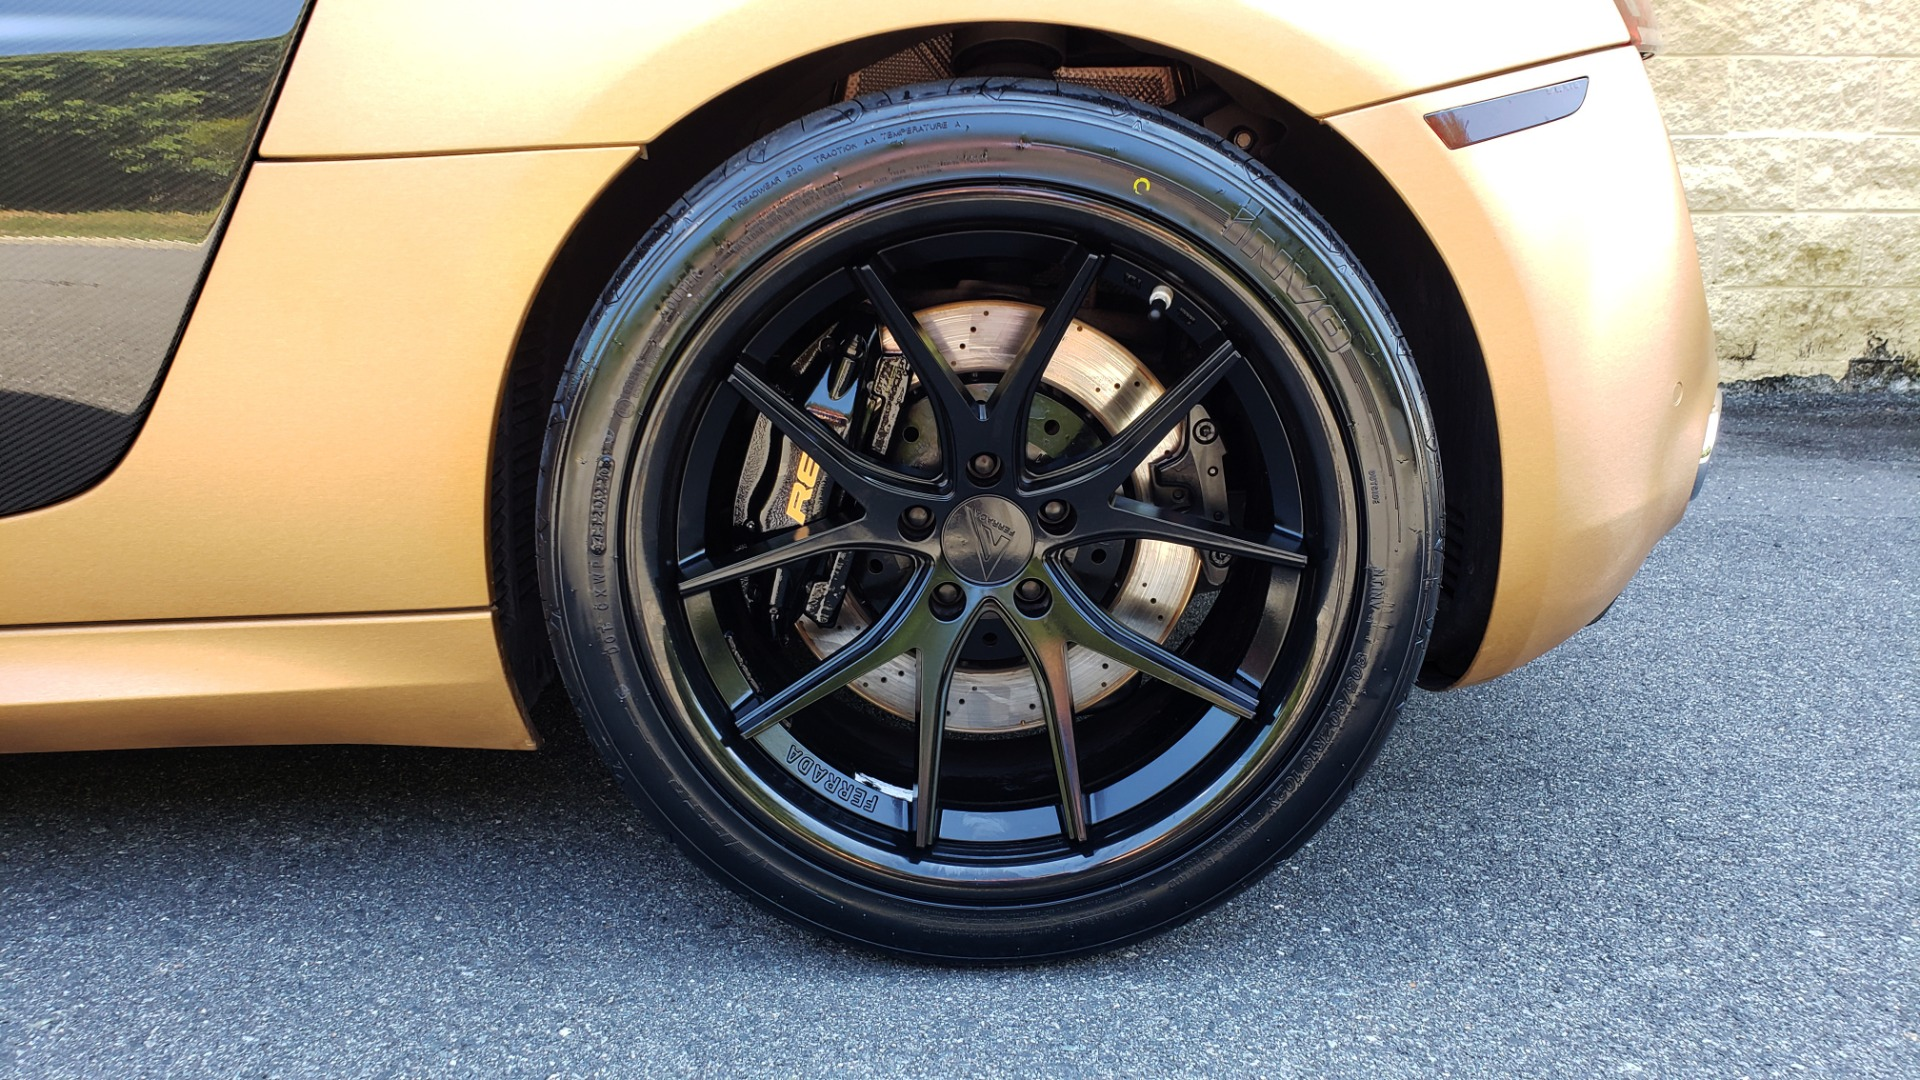 Used 2012 Audi R8 5.2L V10 / AWD / COUPE / NAV / 6-SPD AUTO / CUSTOM WRAP for sale Sold at Formula Imports in Charlotte NC 28227 72